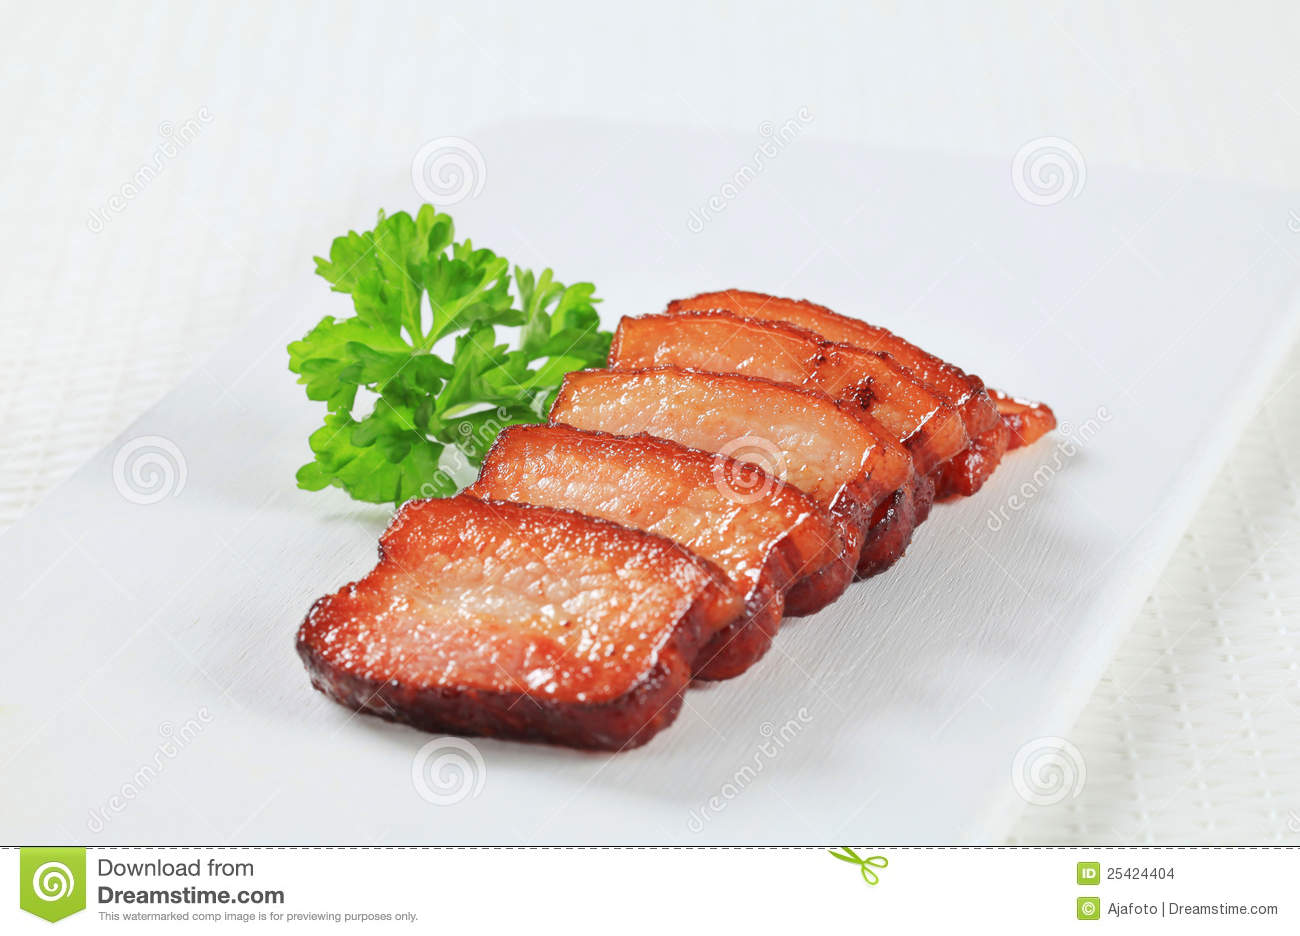 ... salt fried pork pork belly with leeks and chili bean sauce or salt